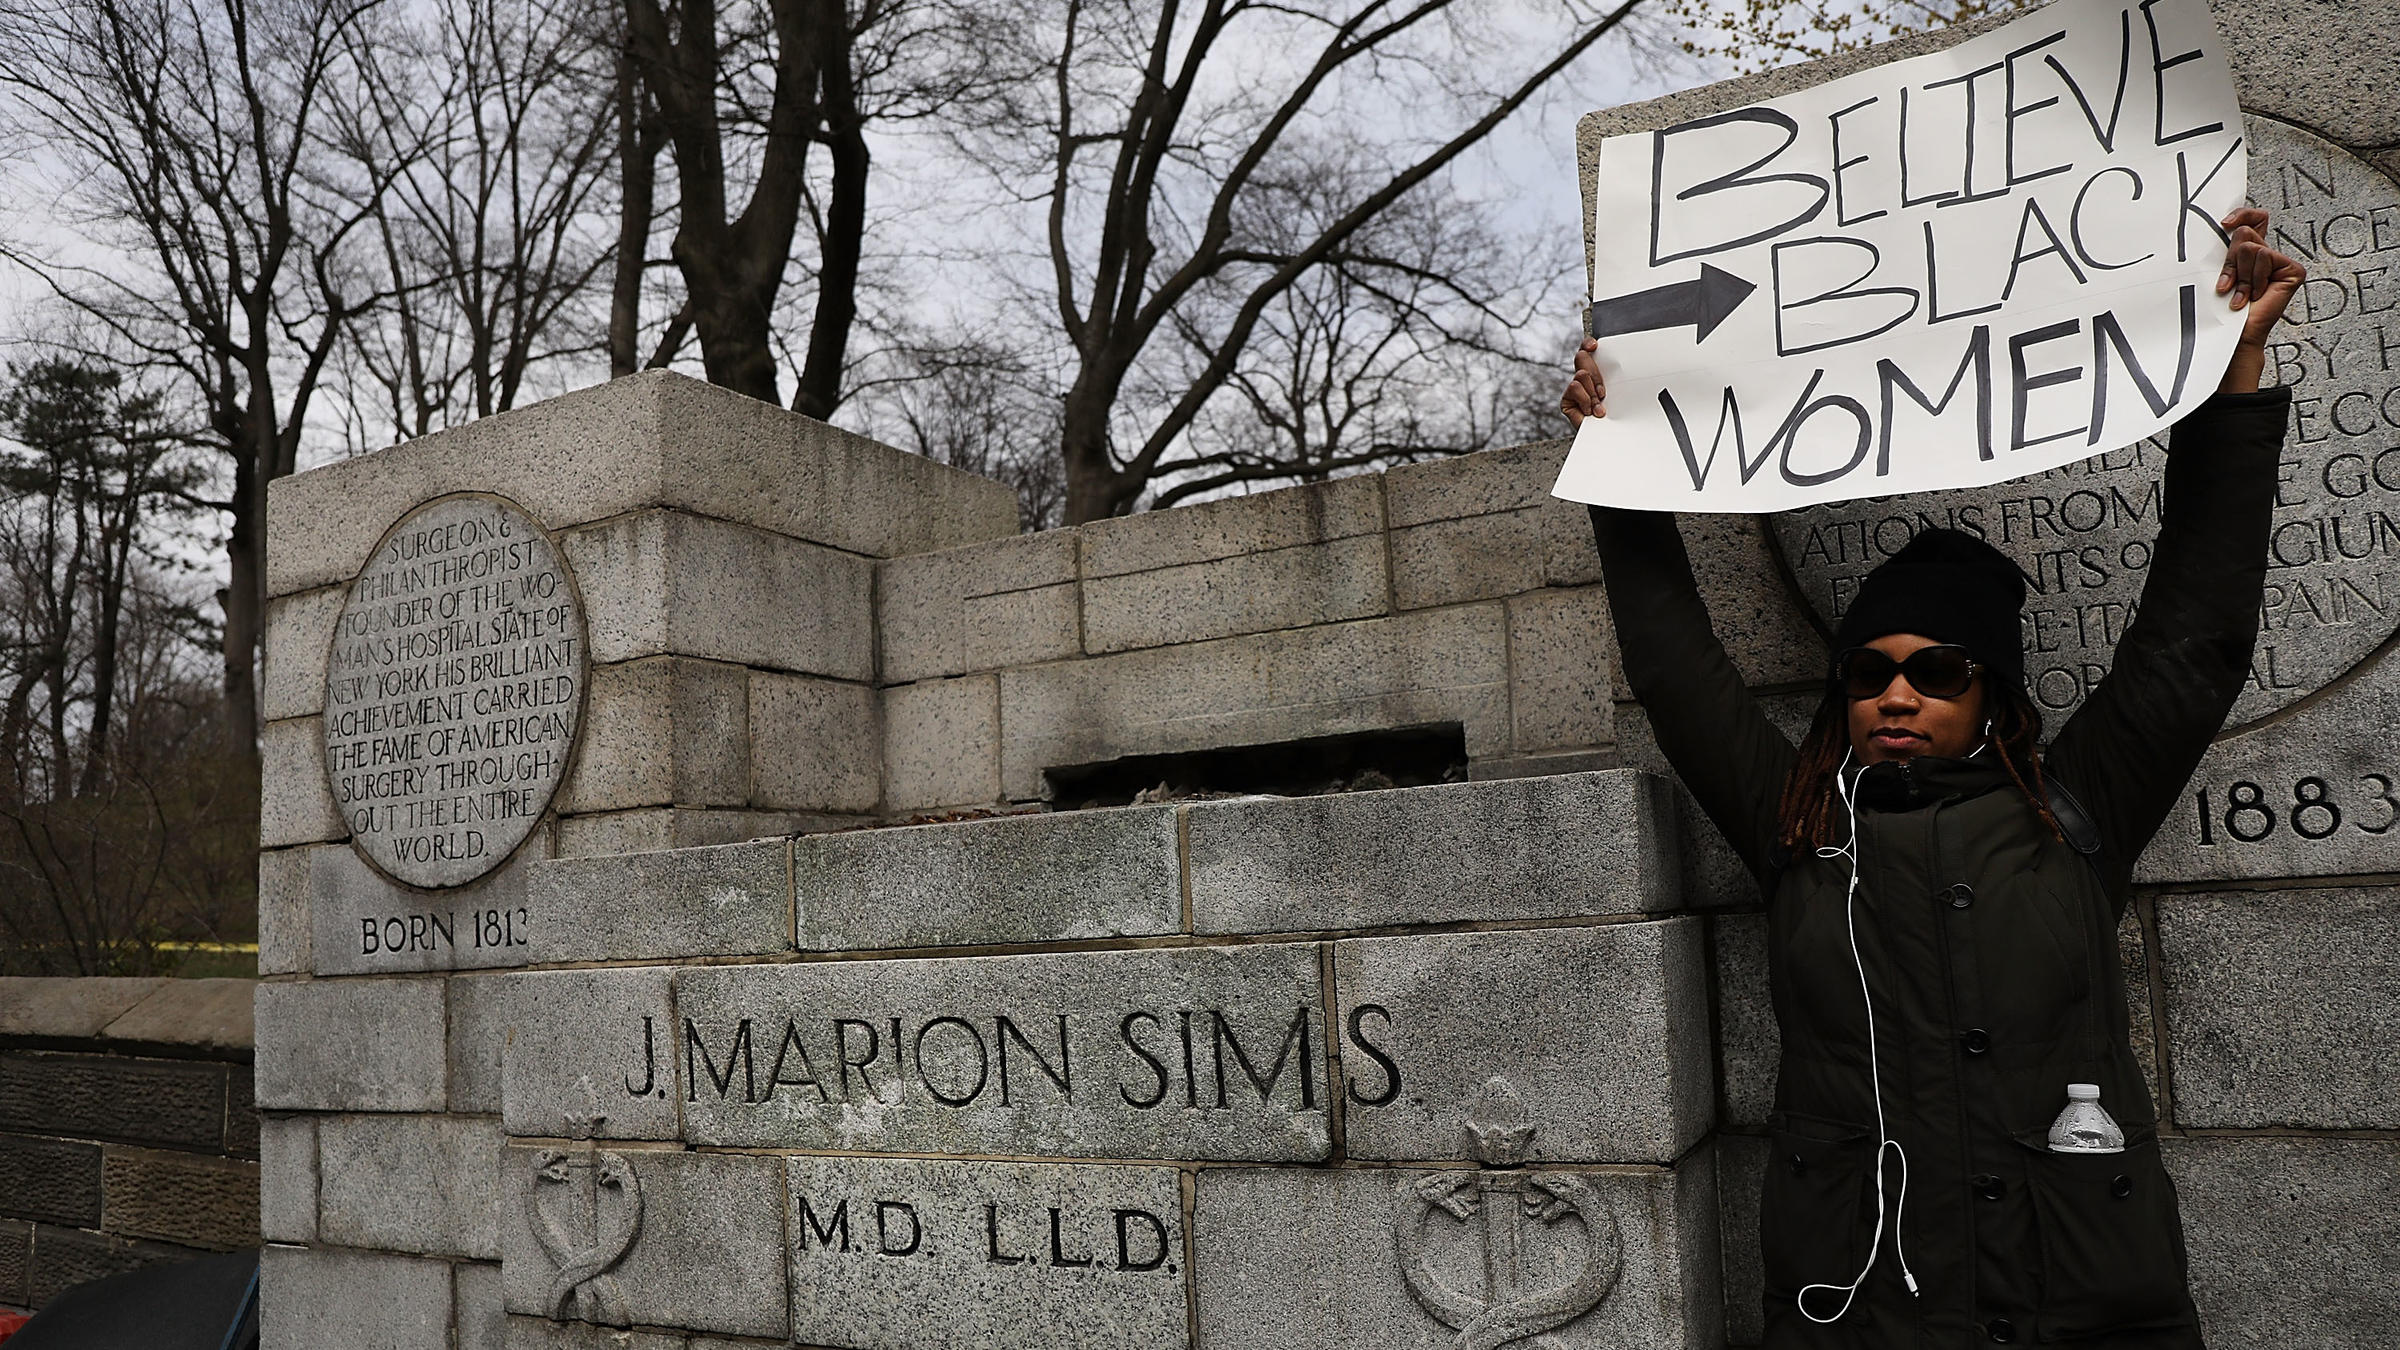 A woman stands beside the empty pedestal where a statue of J. Marion Sims used to stand. Multiple groups demanded the removal of the statue which sat on a pedestal praising his achievements as